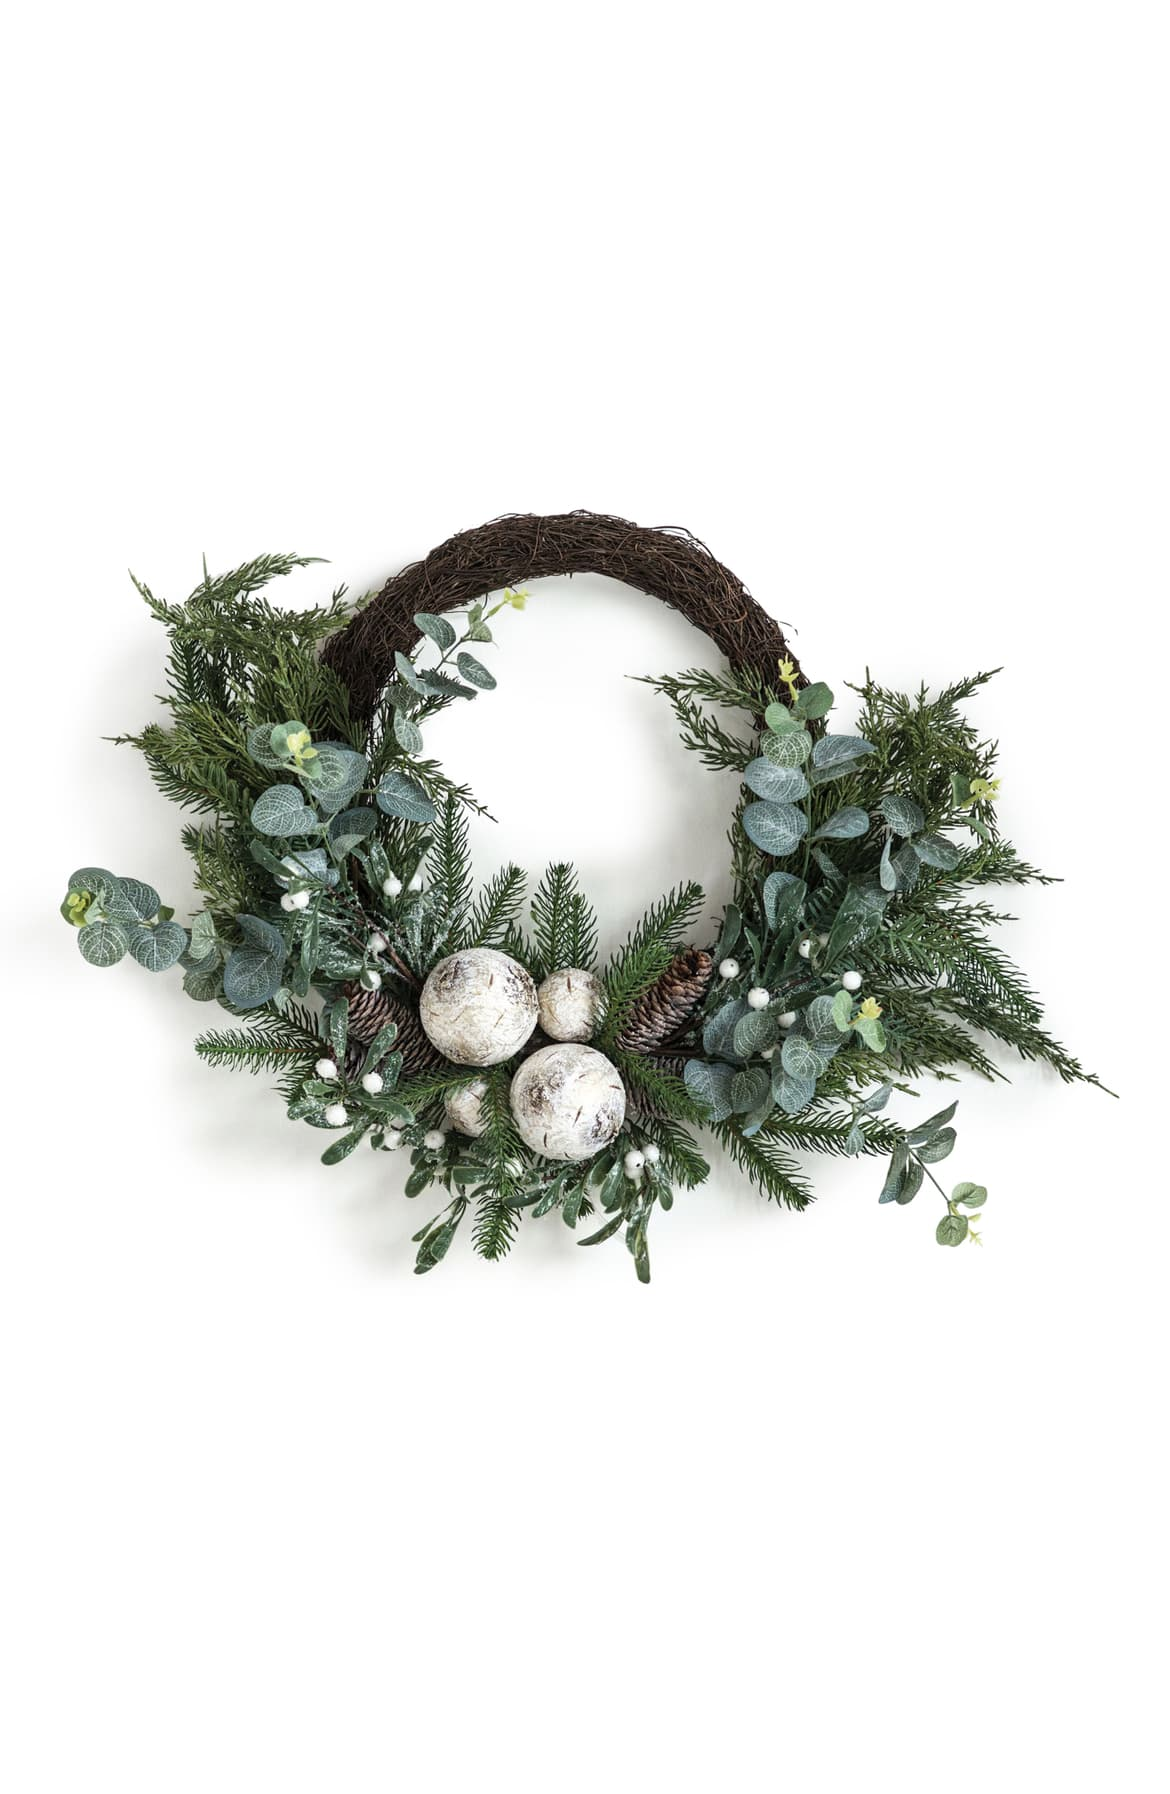 Faux Eucalyptus, birch balls and mixed greenery with pinecones and mistletoe on a faux vine wreath Christmas Holiday Winter